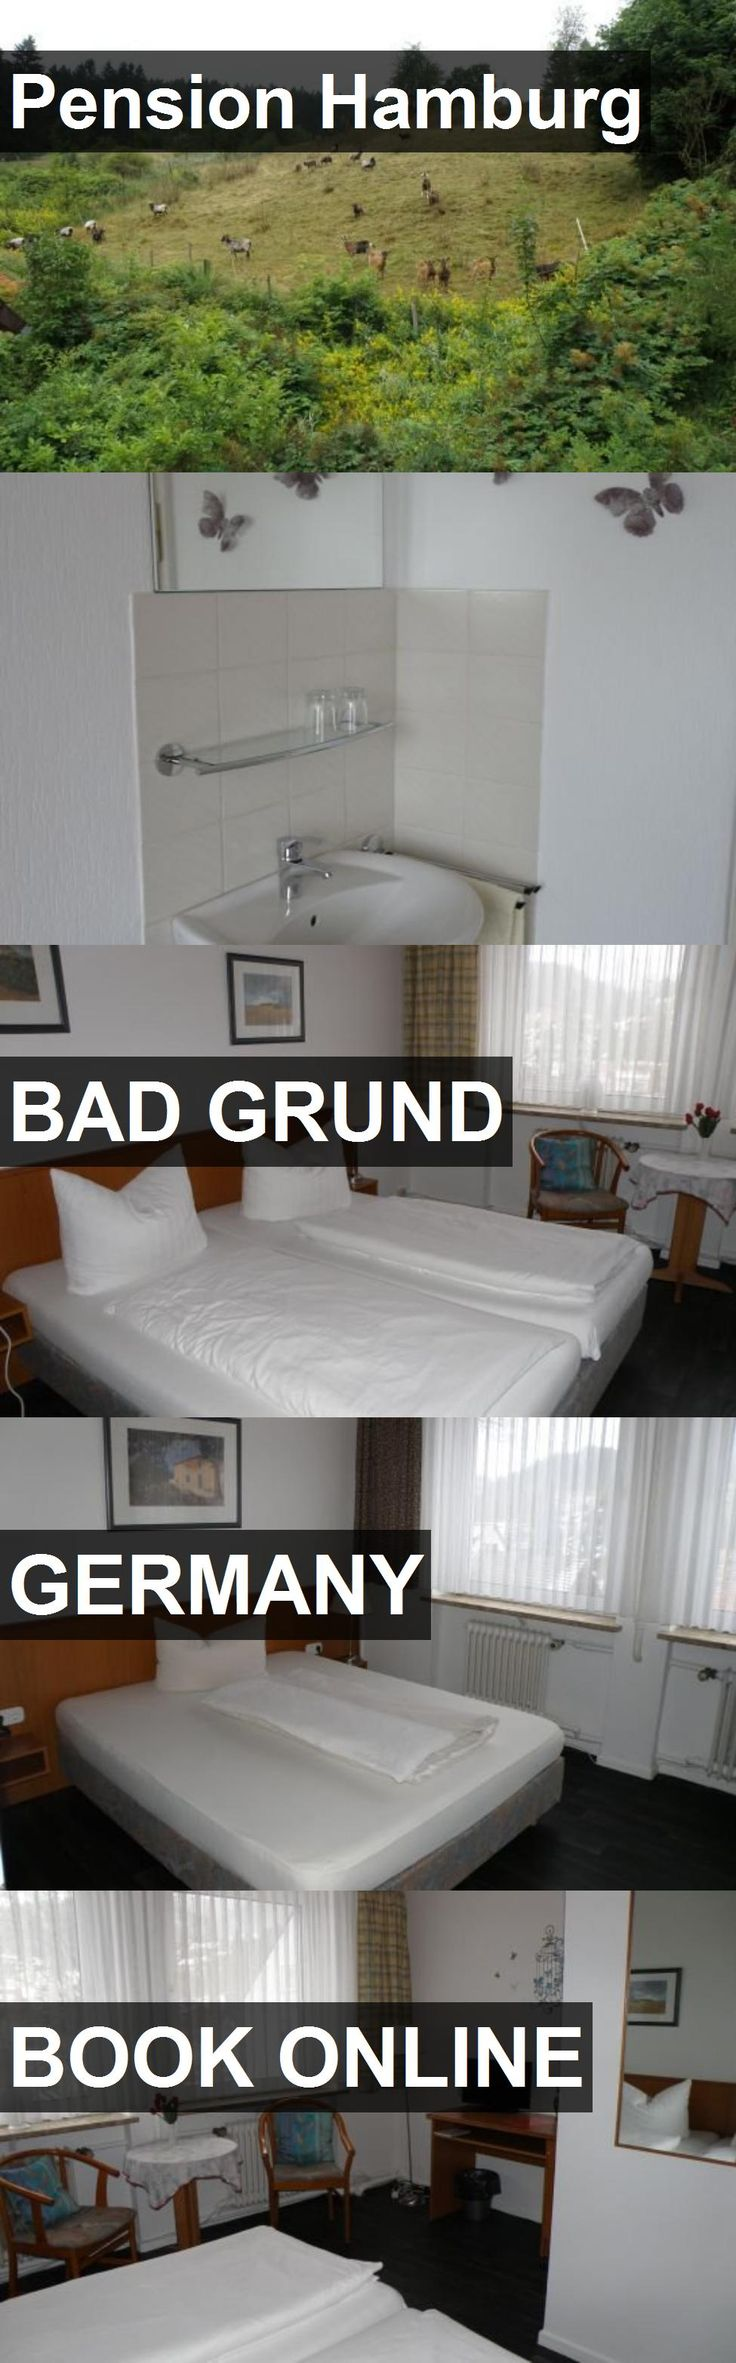 Hotel Pension Hamburg in Bad Grund, Germany. For more information, photos, reviews and best prices please follow the link. #Germany #BadGrund #travel #vacation #hotel